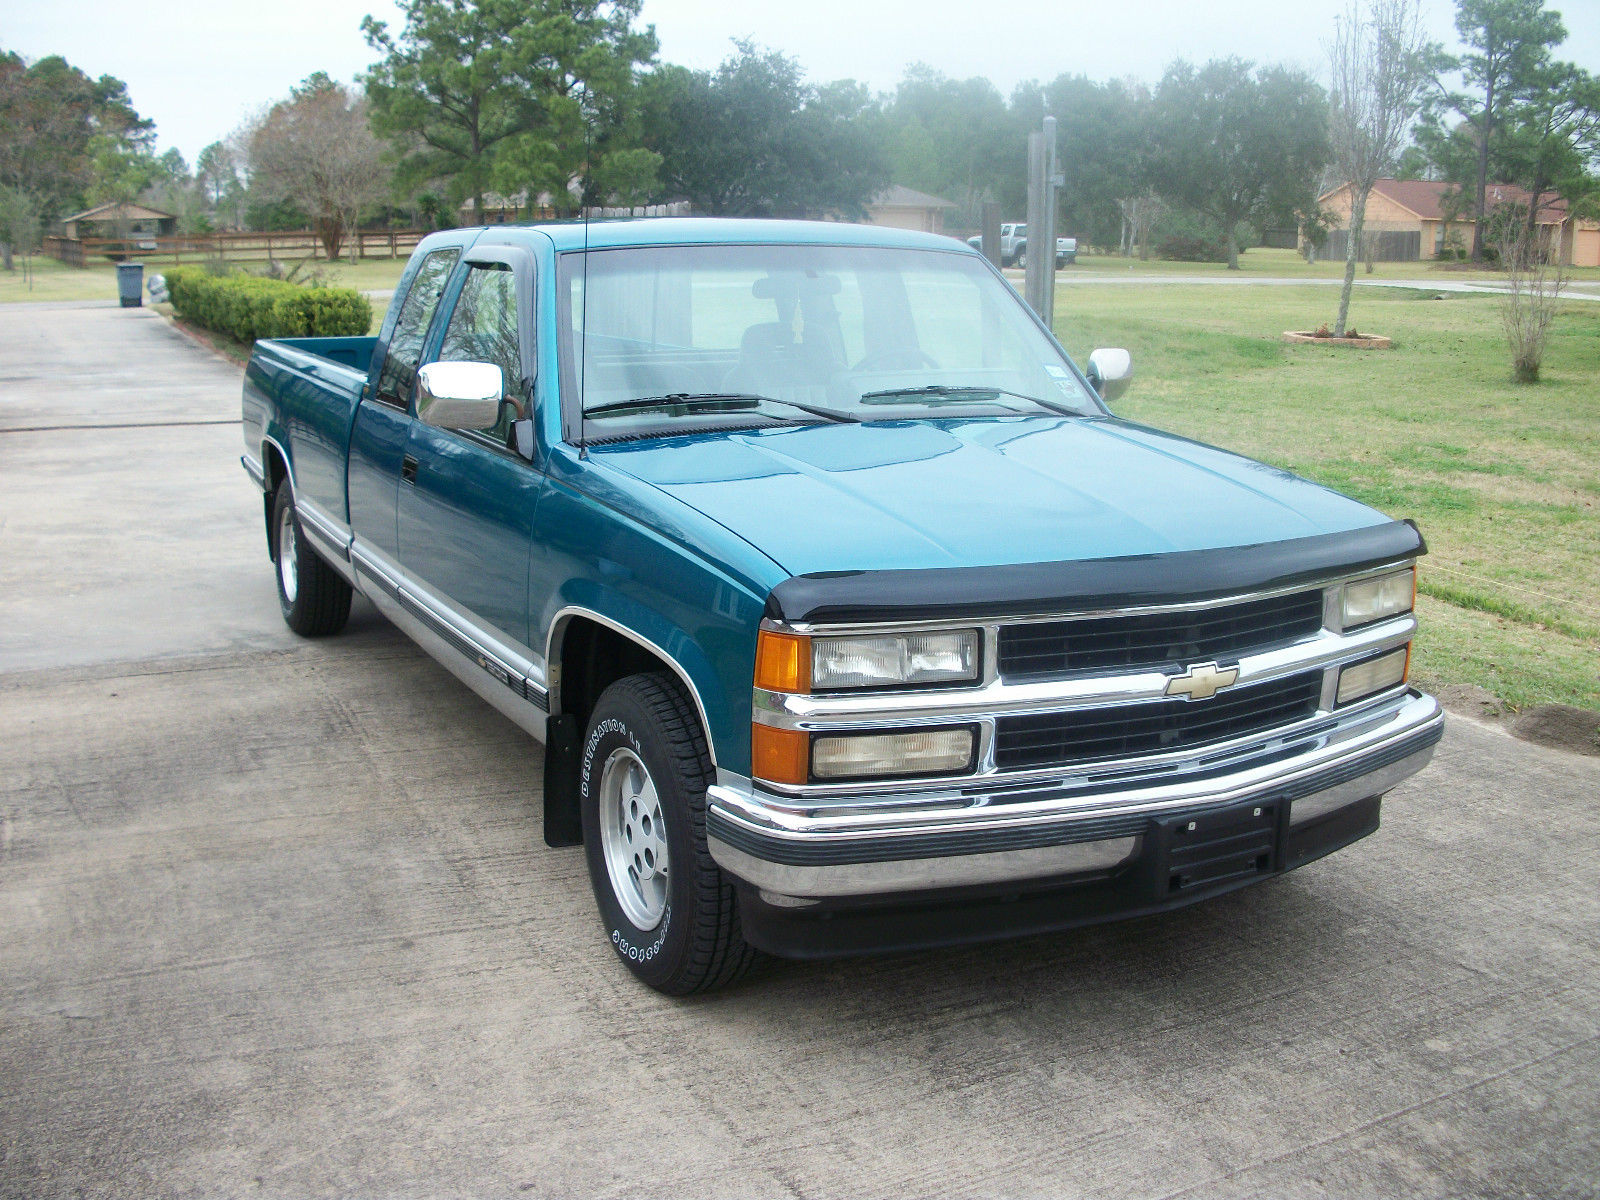 1994 chevy c1500 silverado ext cab longbed for sale in alvin texas united states. Black Bedroom Furniture Sets. Home Design Ideas